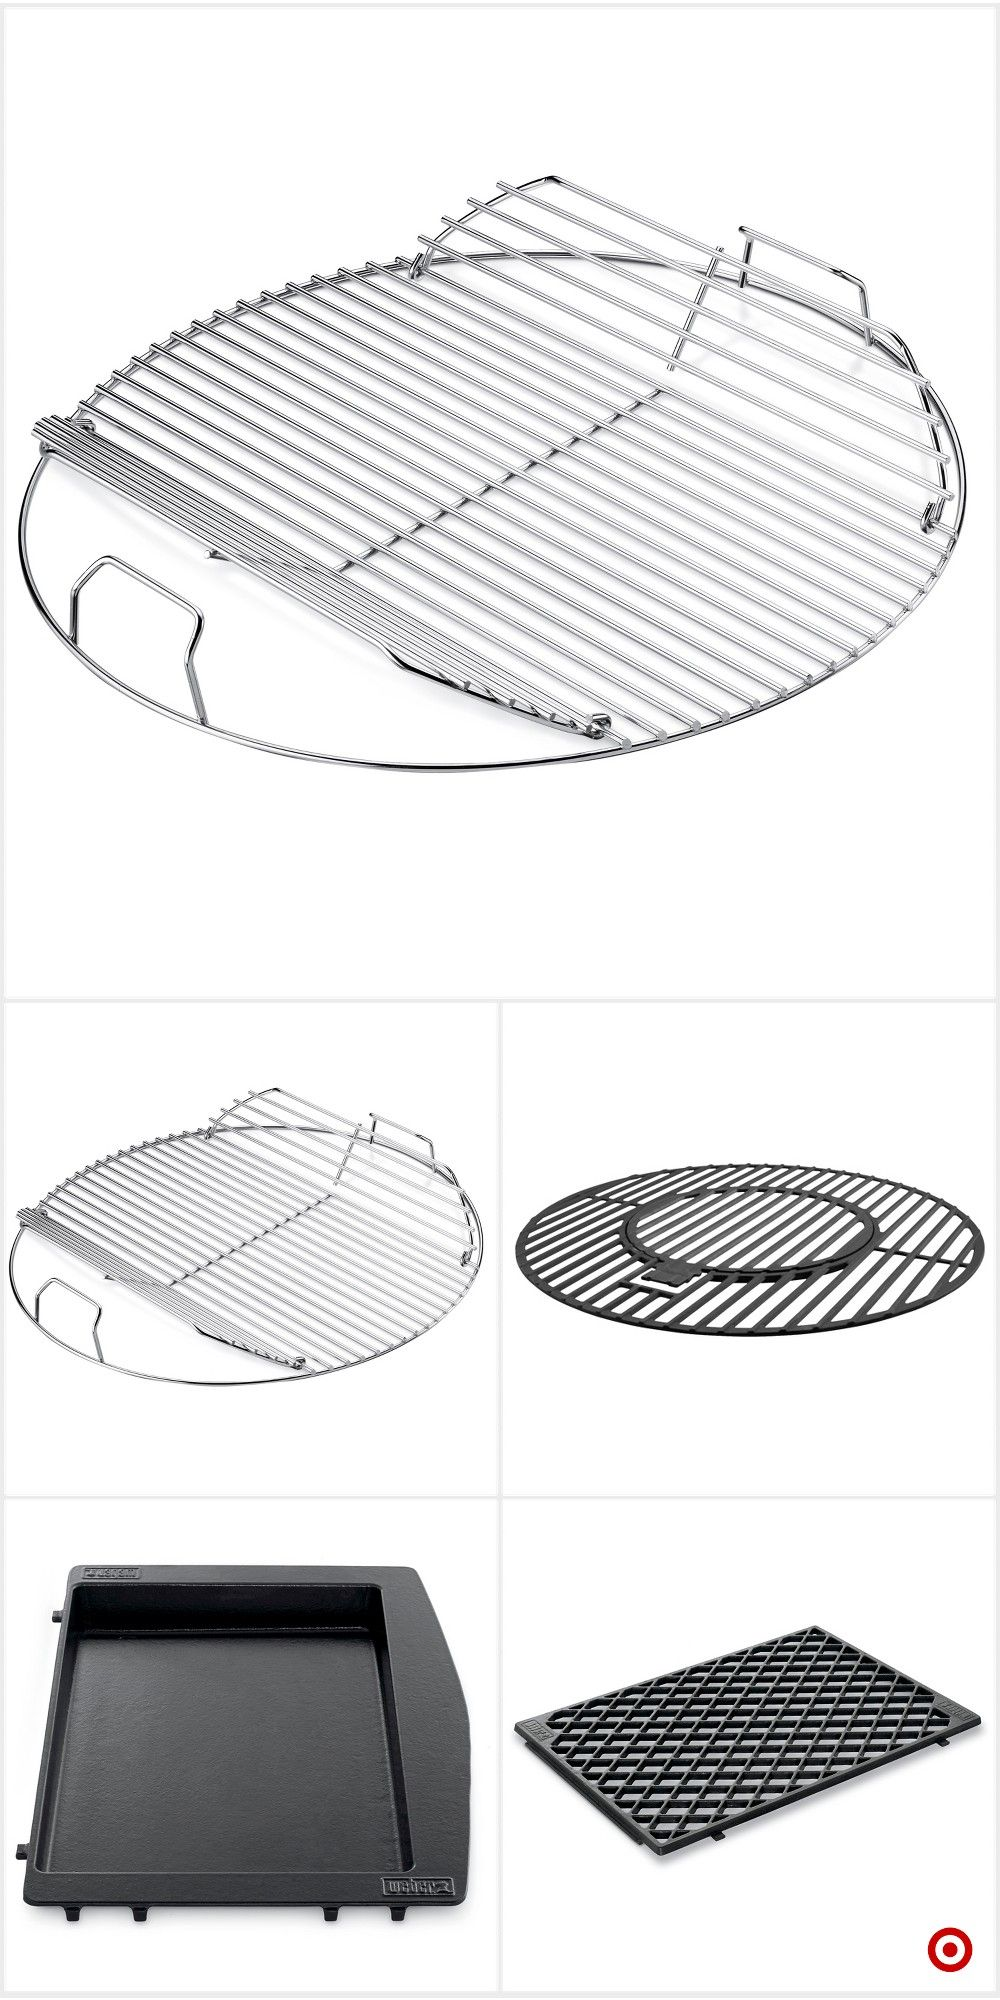 Luggage Rack Target Glamorous Shop Target For Grill Grate You Will Love At Great Low Pricesfree Decorating Inspiration